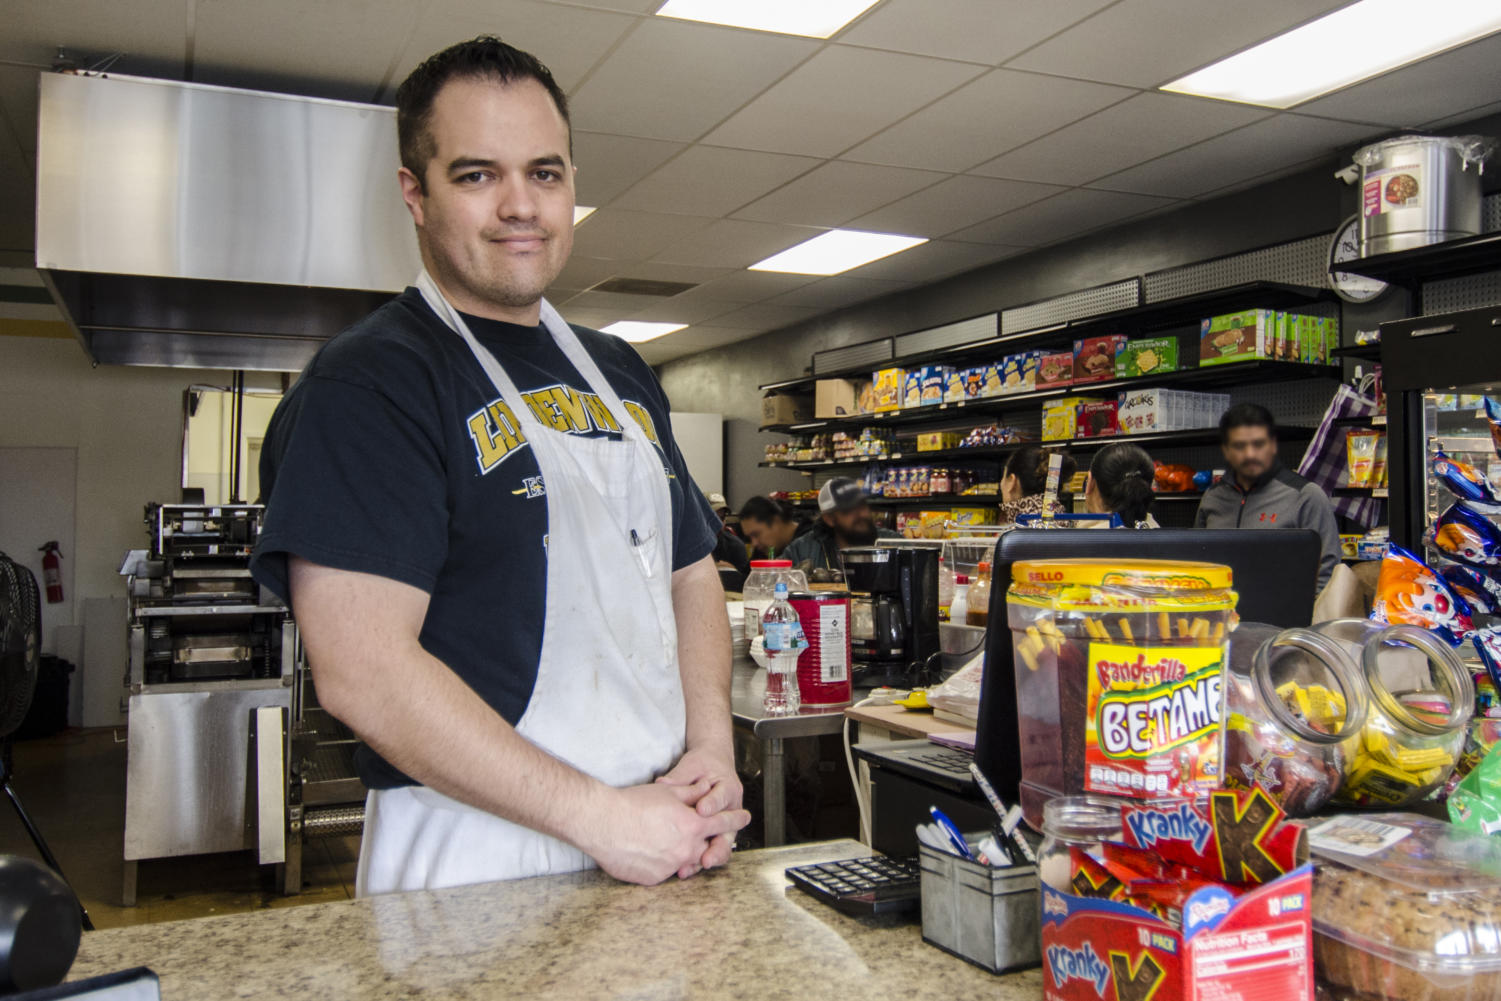 Officer Zeus Hernandez stands at the counter of his restaurant La Tiendita, located at the corner of Clarkson and Manchester. He and his wife own the restaurant, which sells authentic Mexican cuisine along with groceries.